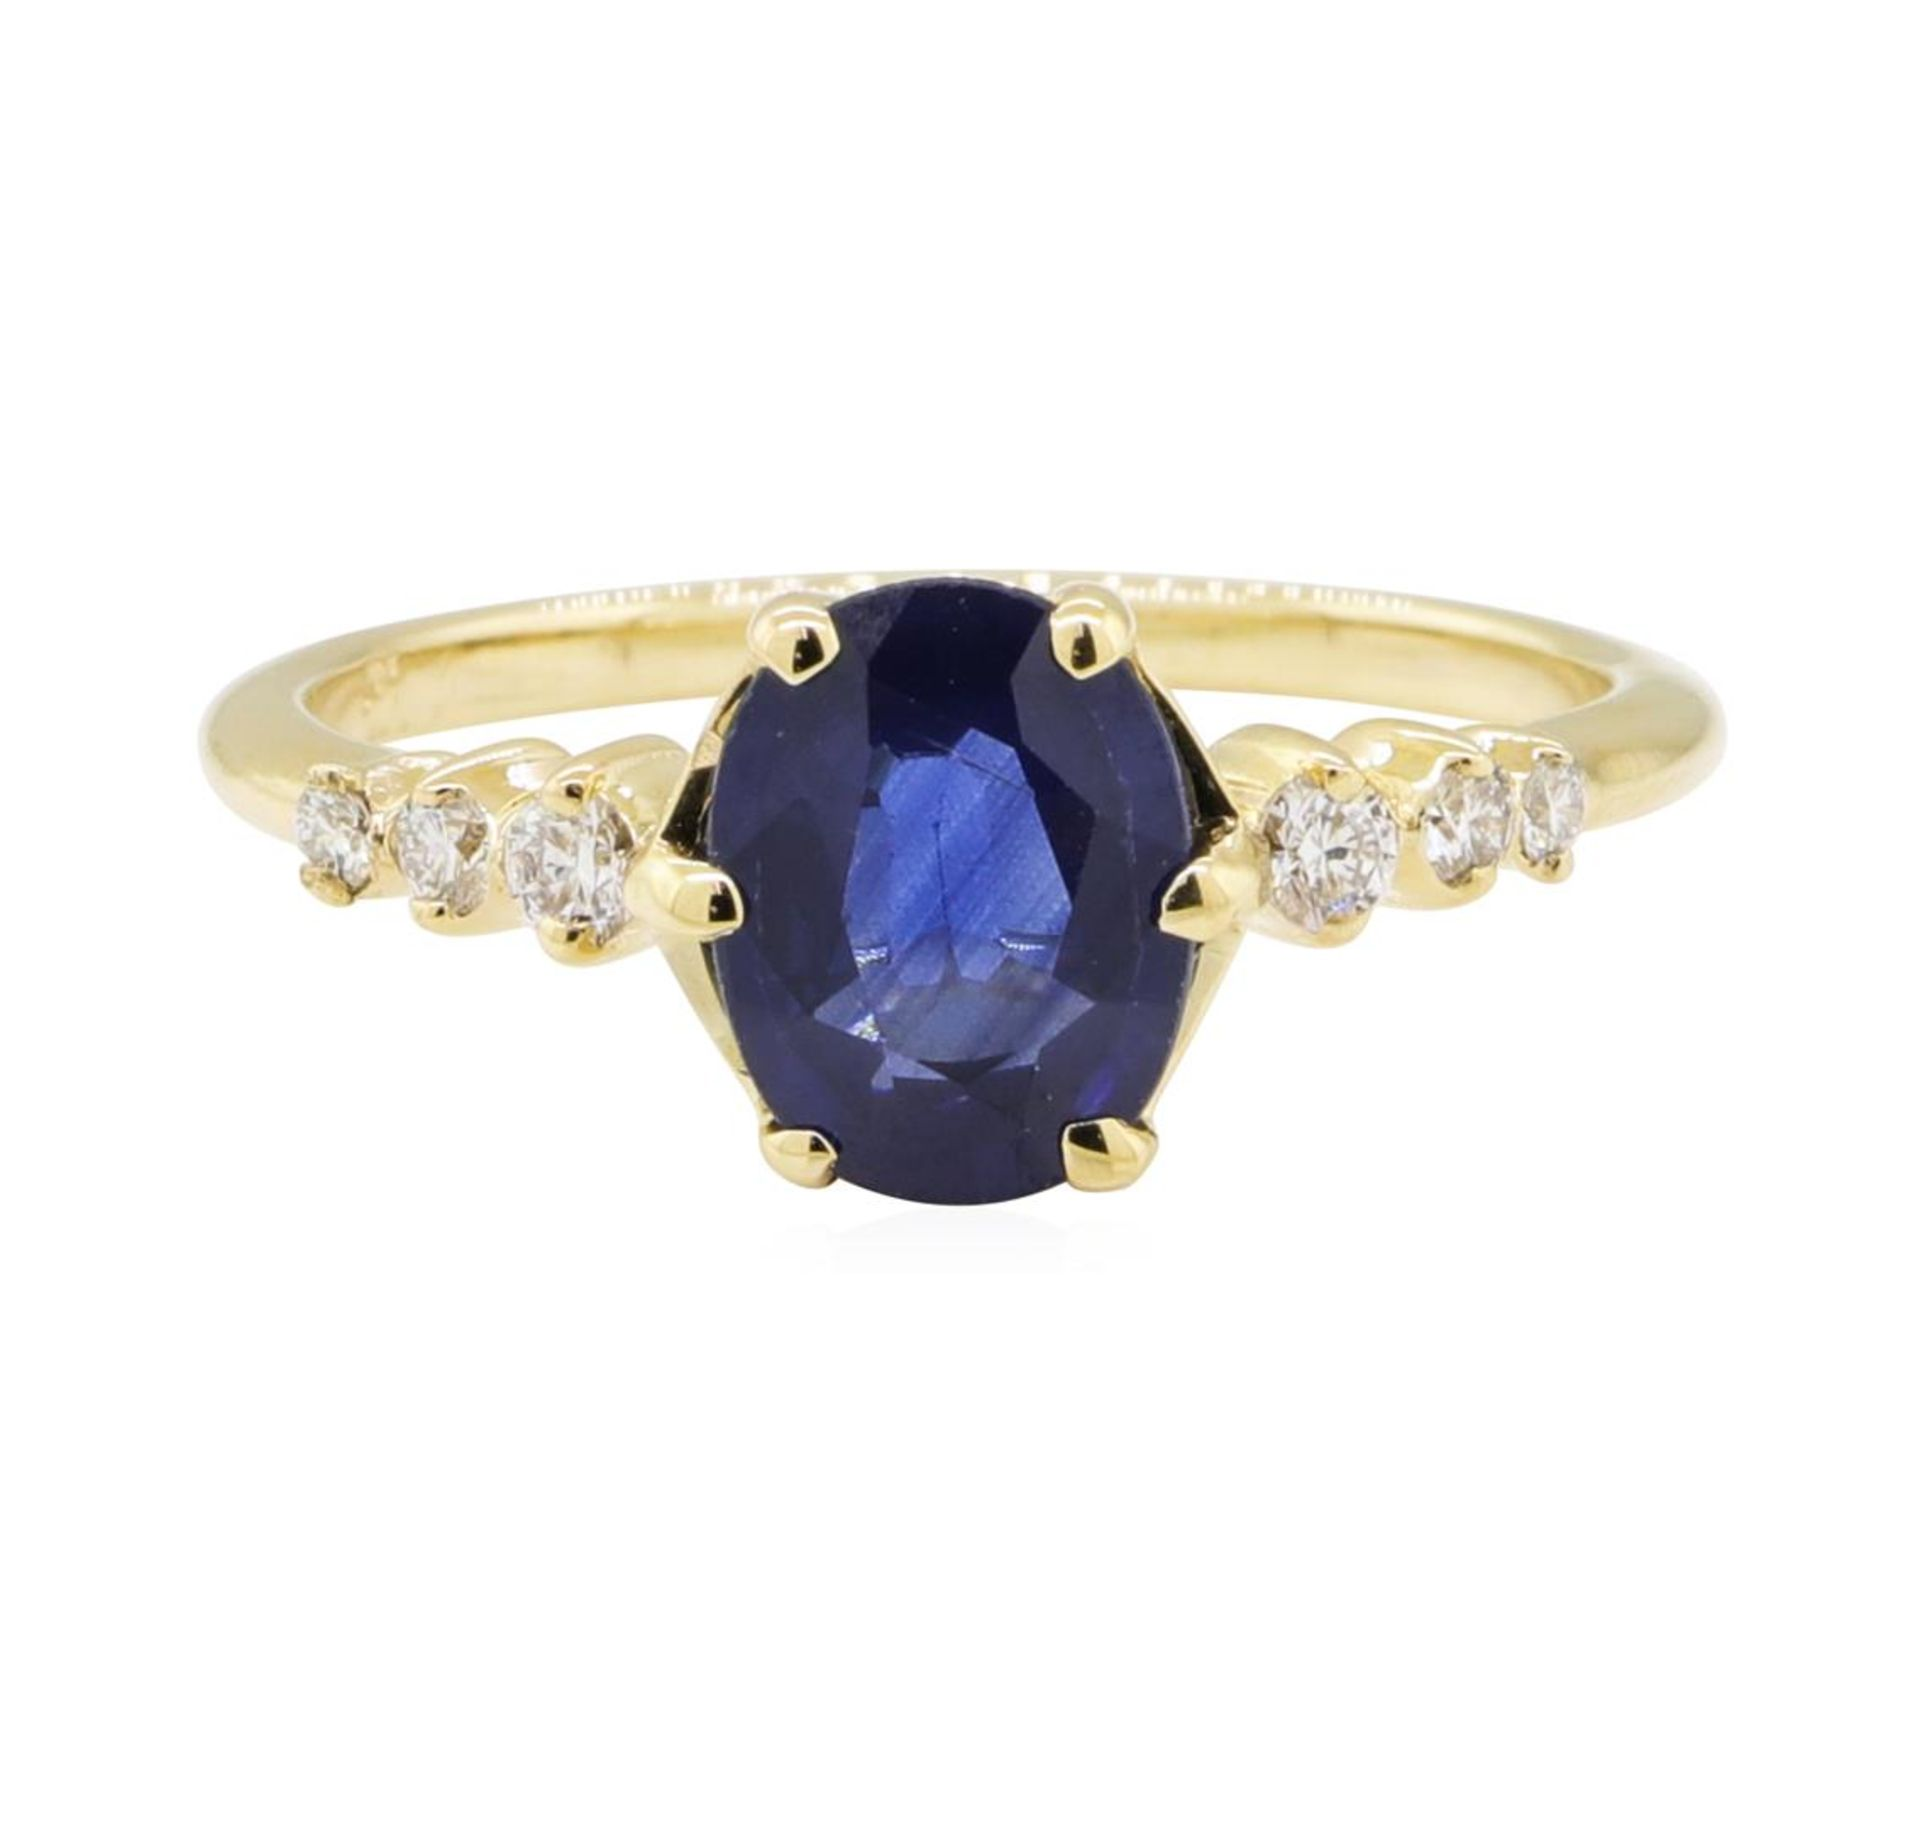 1.43ctw Sapphire and Diamond Ring - 14KT Yellow Gold - Image 2 of 4